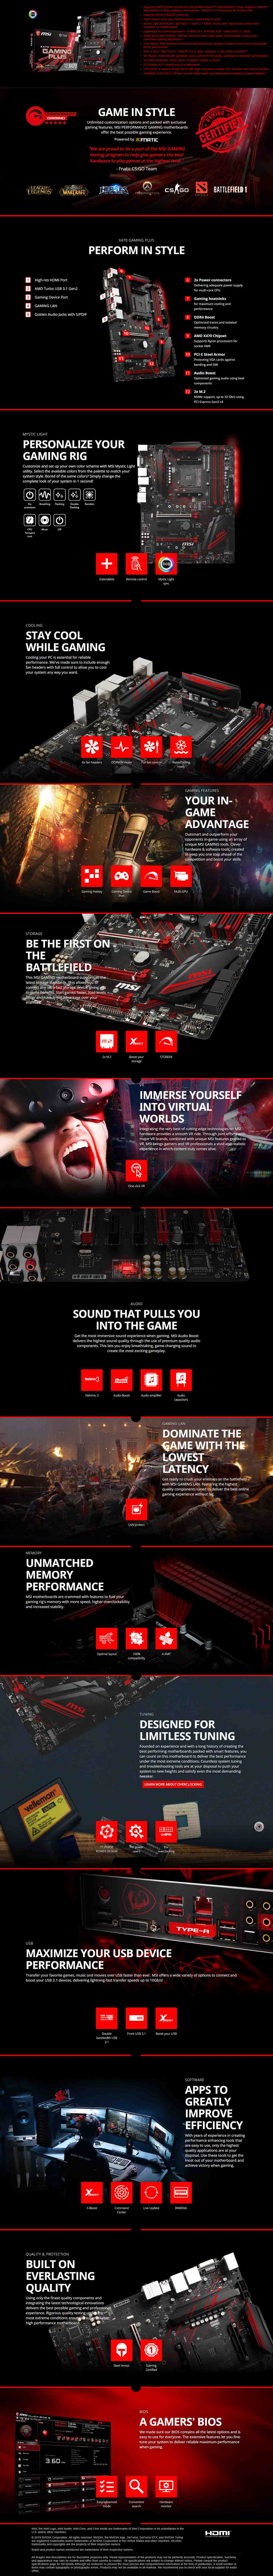 MSI X470 Gaming Plus Motherboard Supports AMD Ryzen 1st and 2nd Generation